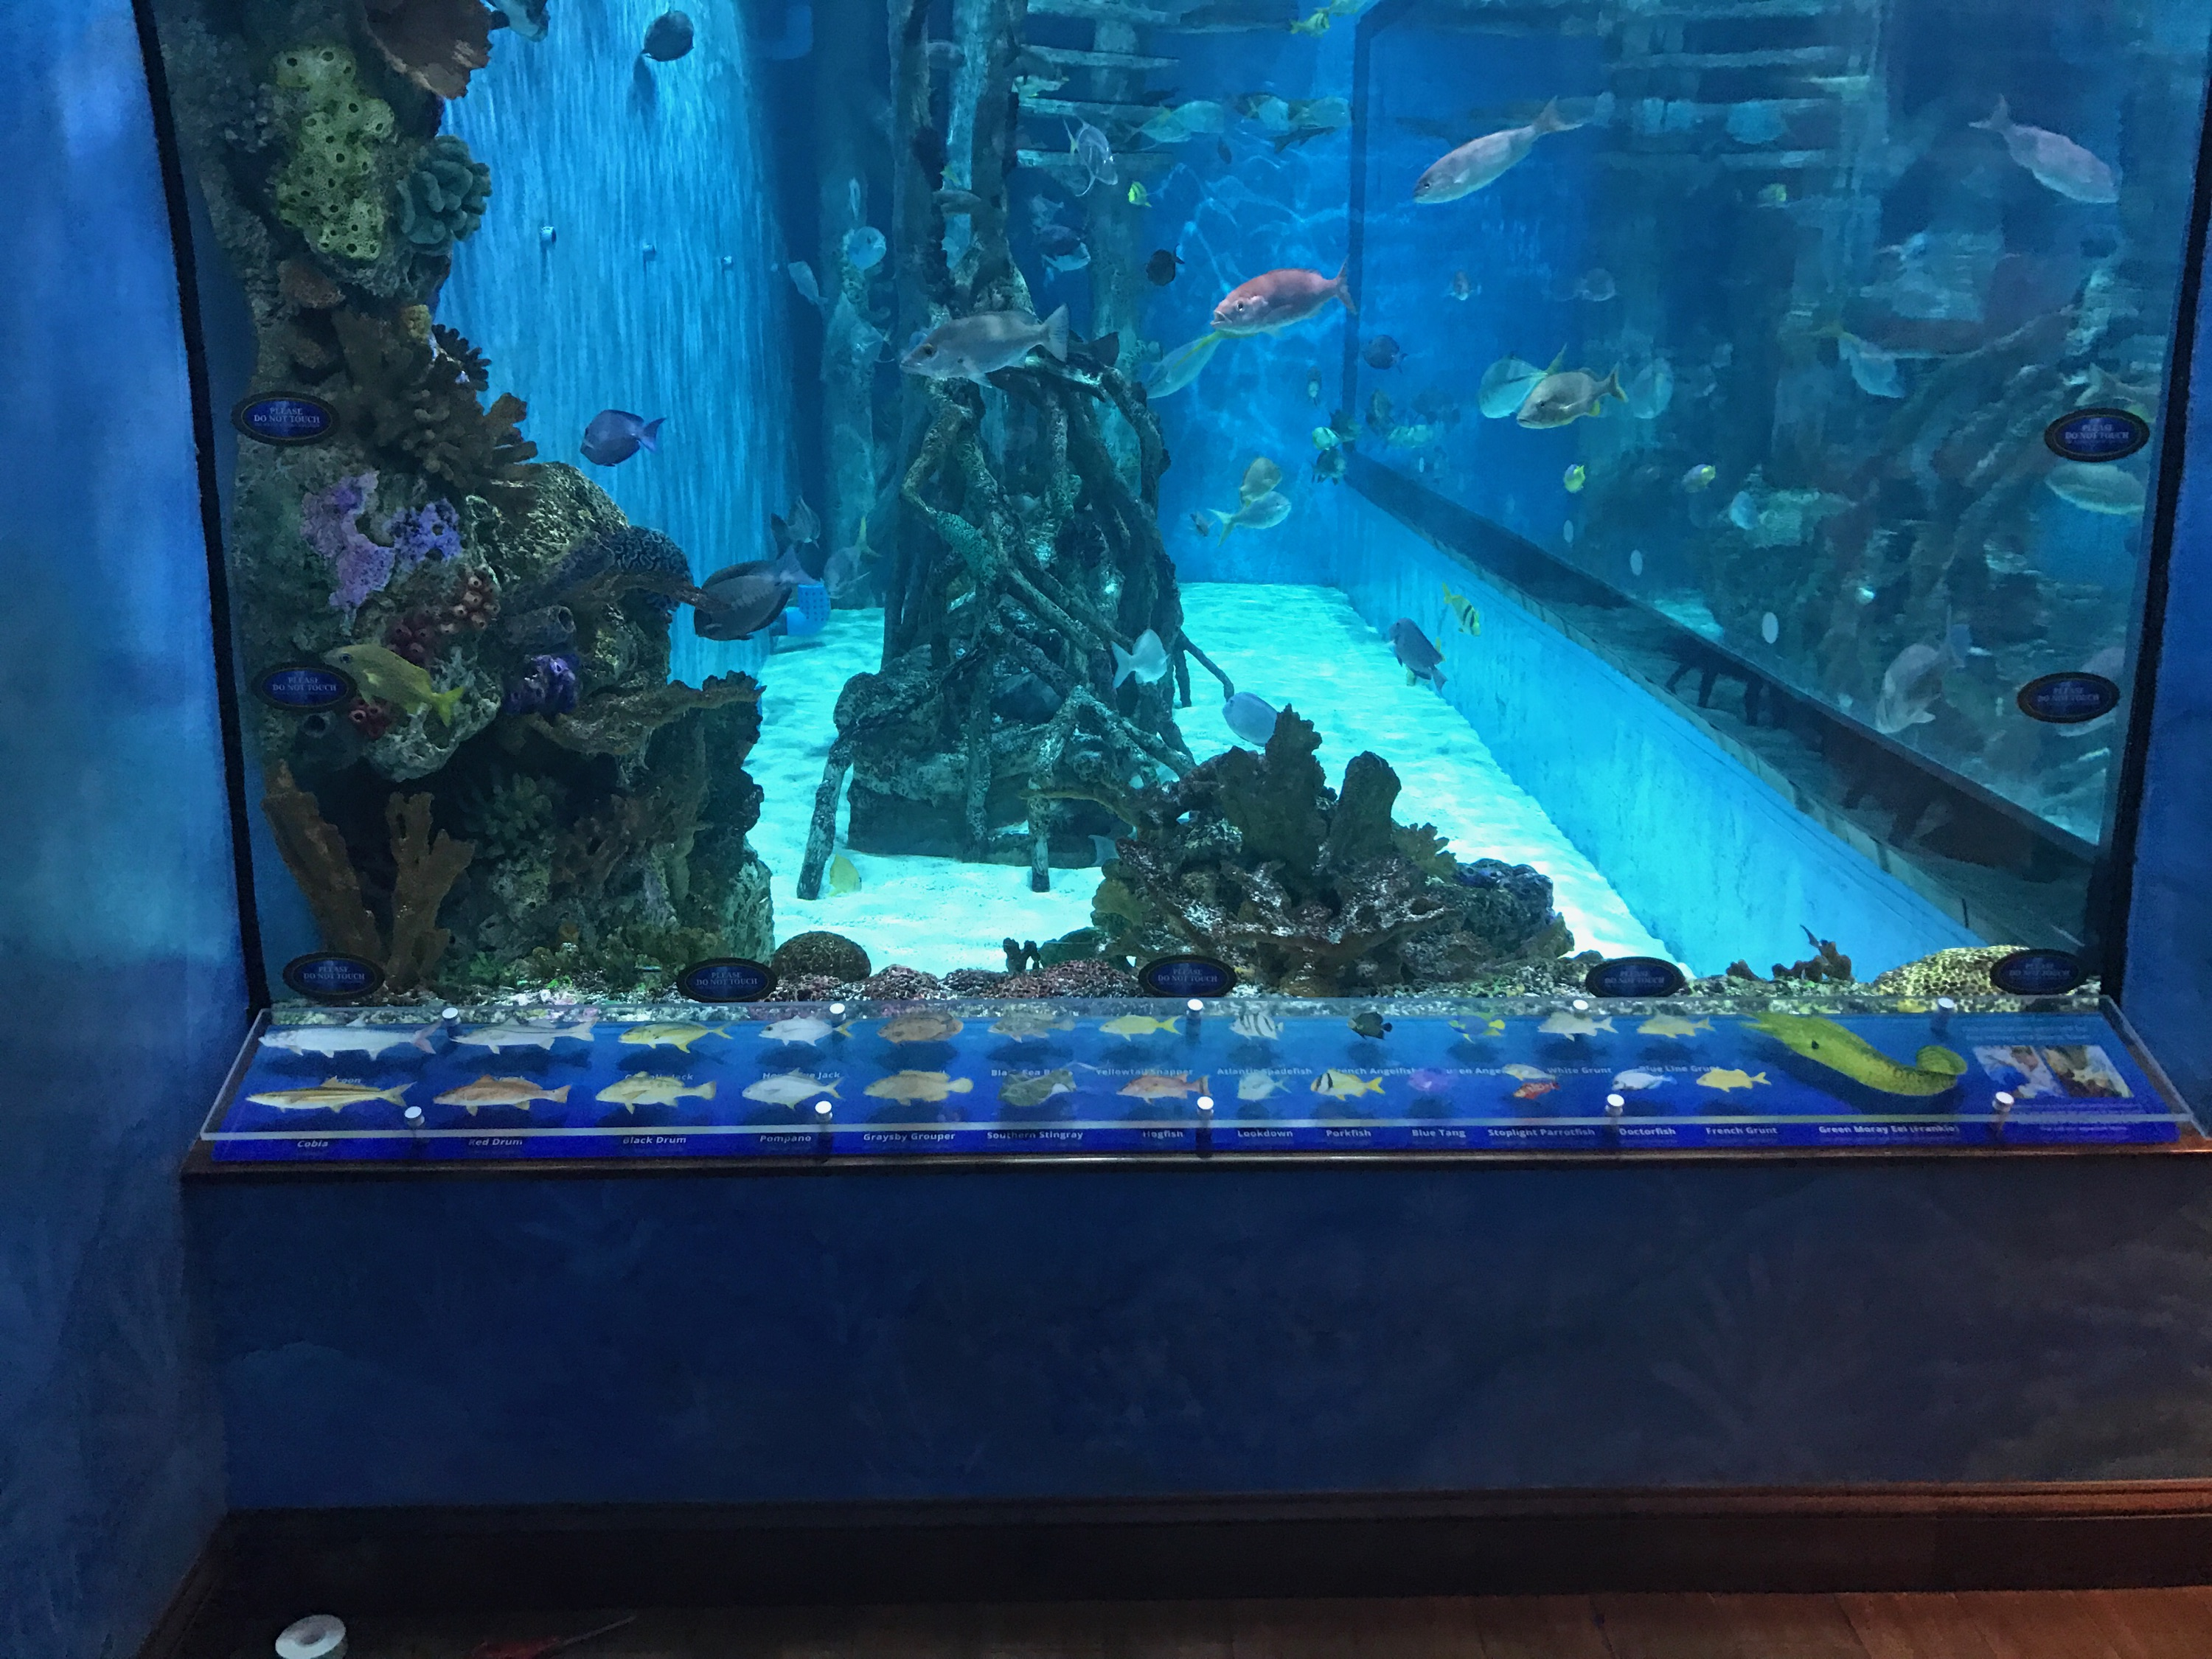 This is a view of the aquarium from the front angle.